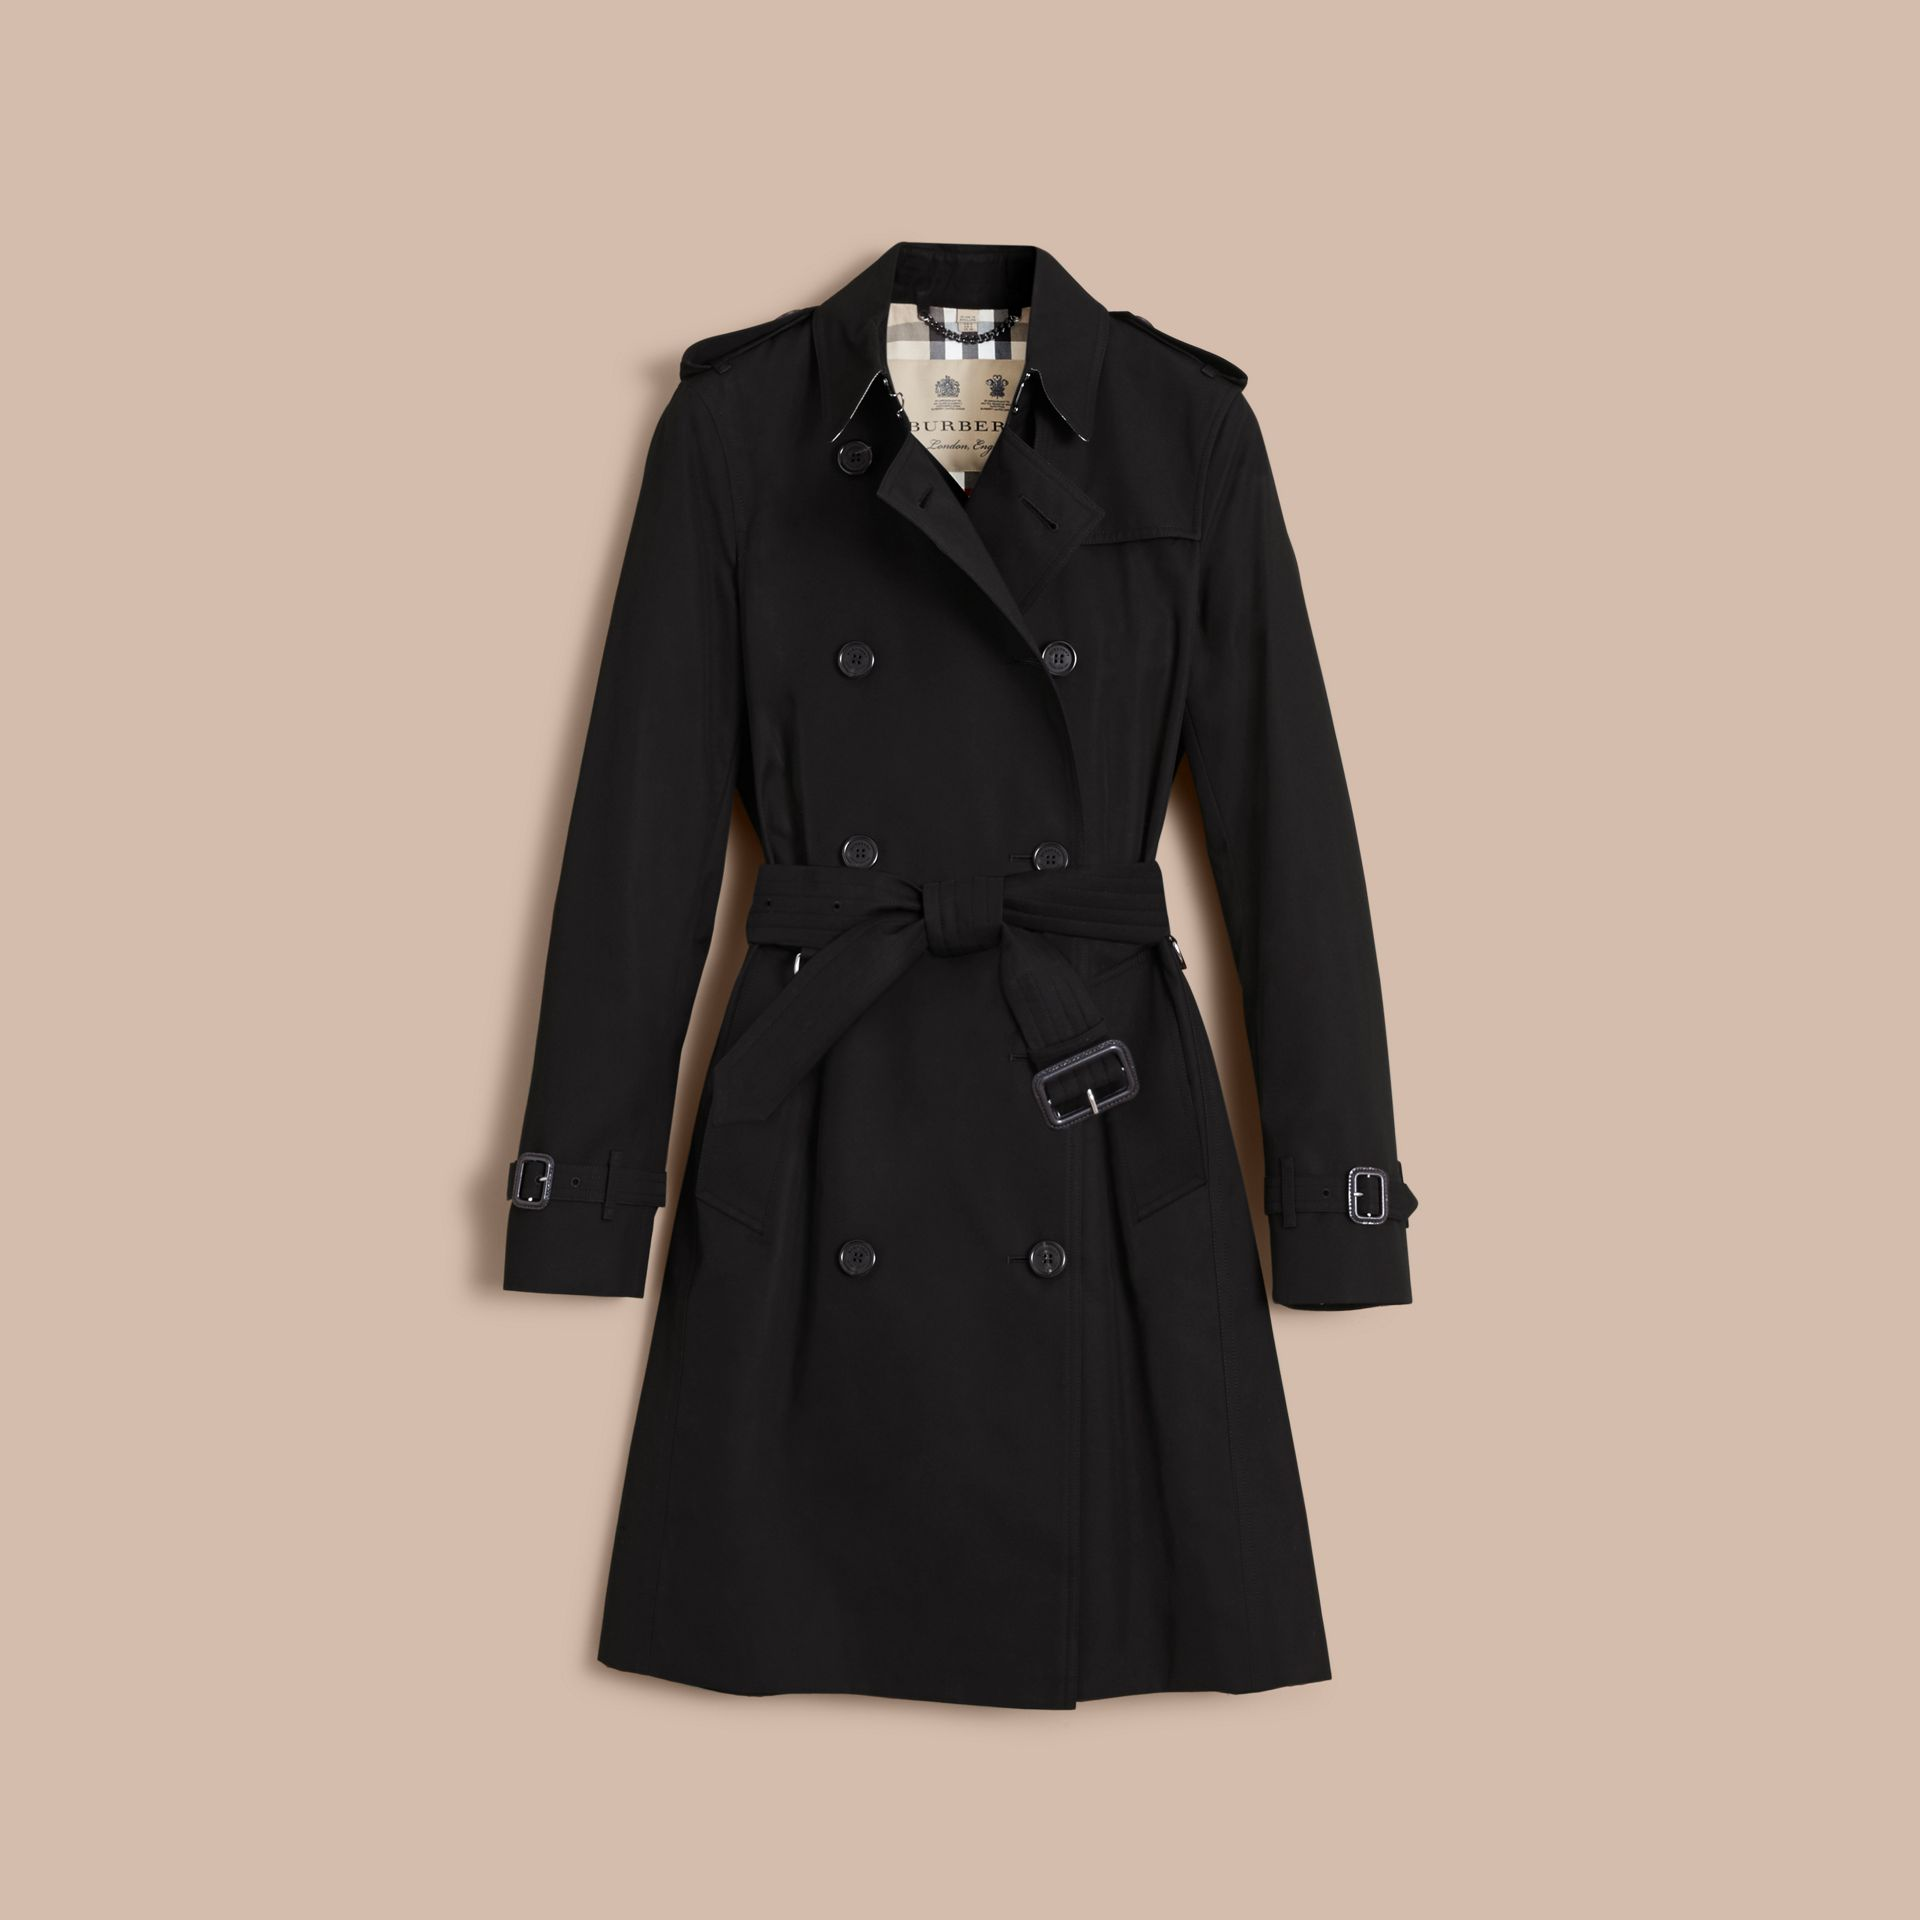 the kensington langer heritage trenchcoat schwarz damen burberry. Black Bedroom Furniture Sets. Home Design Ideas